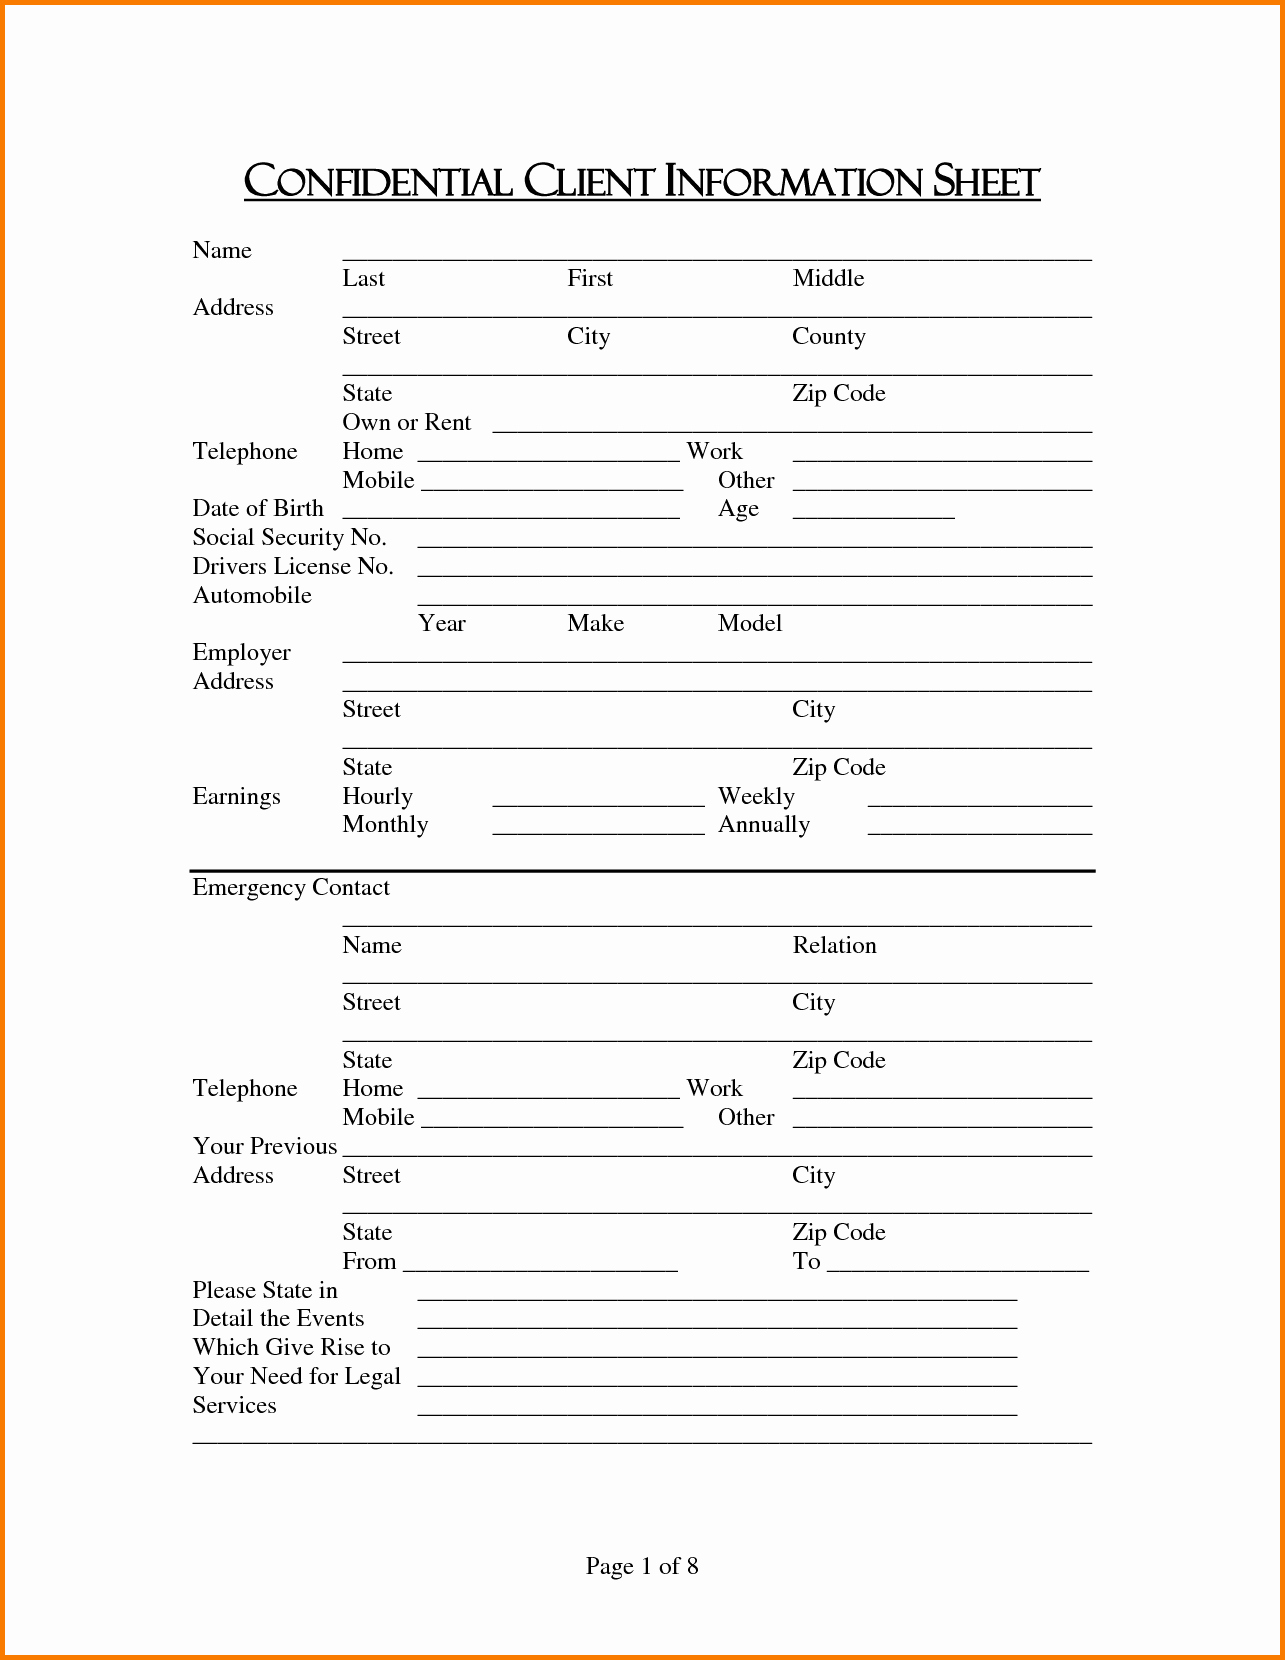 Customer Information form Template Luxury Client Information Sheet